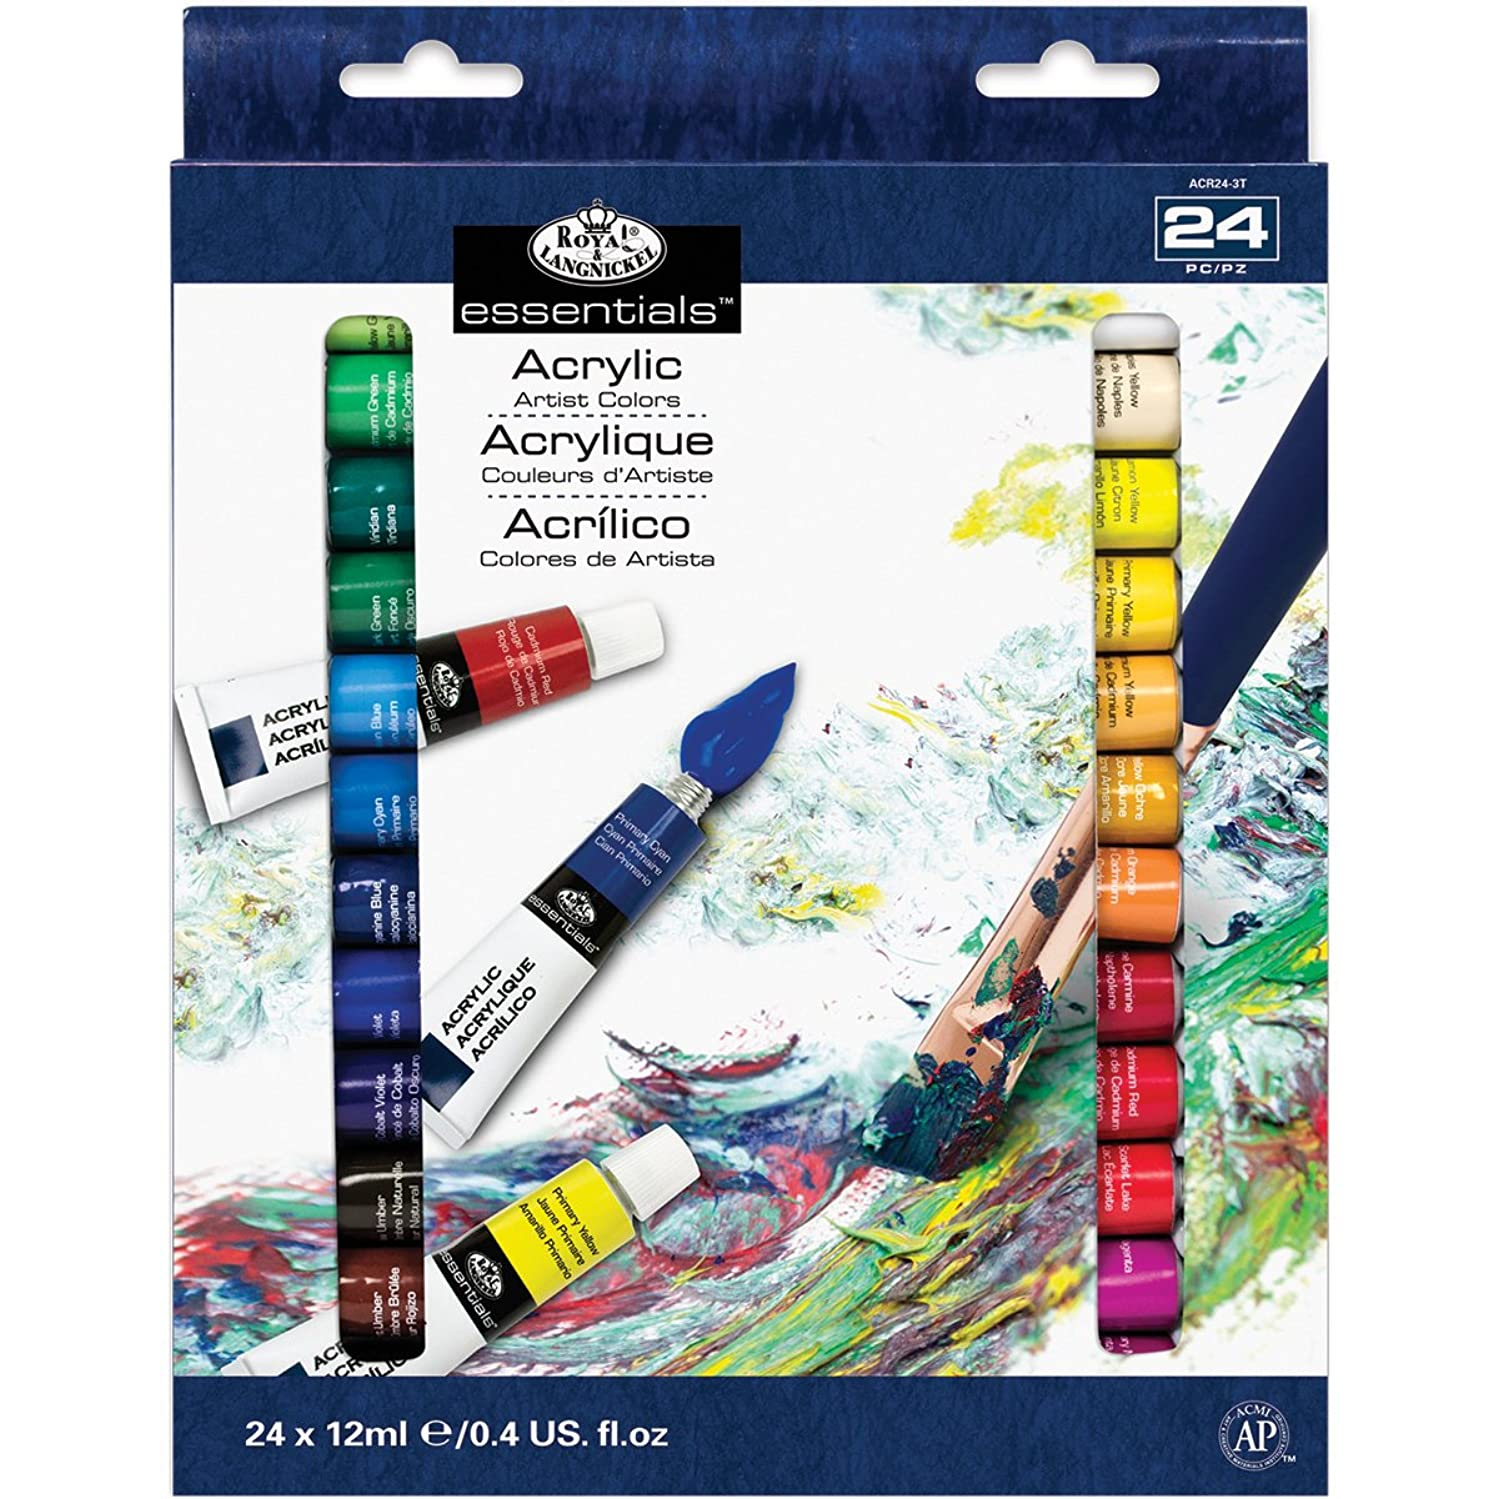 Royal & Langnickel Acrylic Color Artist Tube Paint, 12ml, 24-Pack